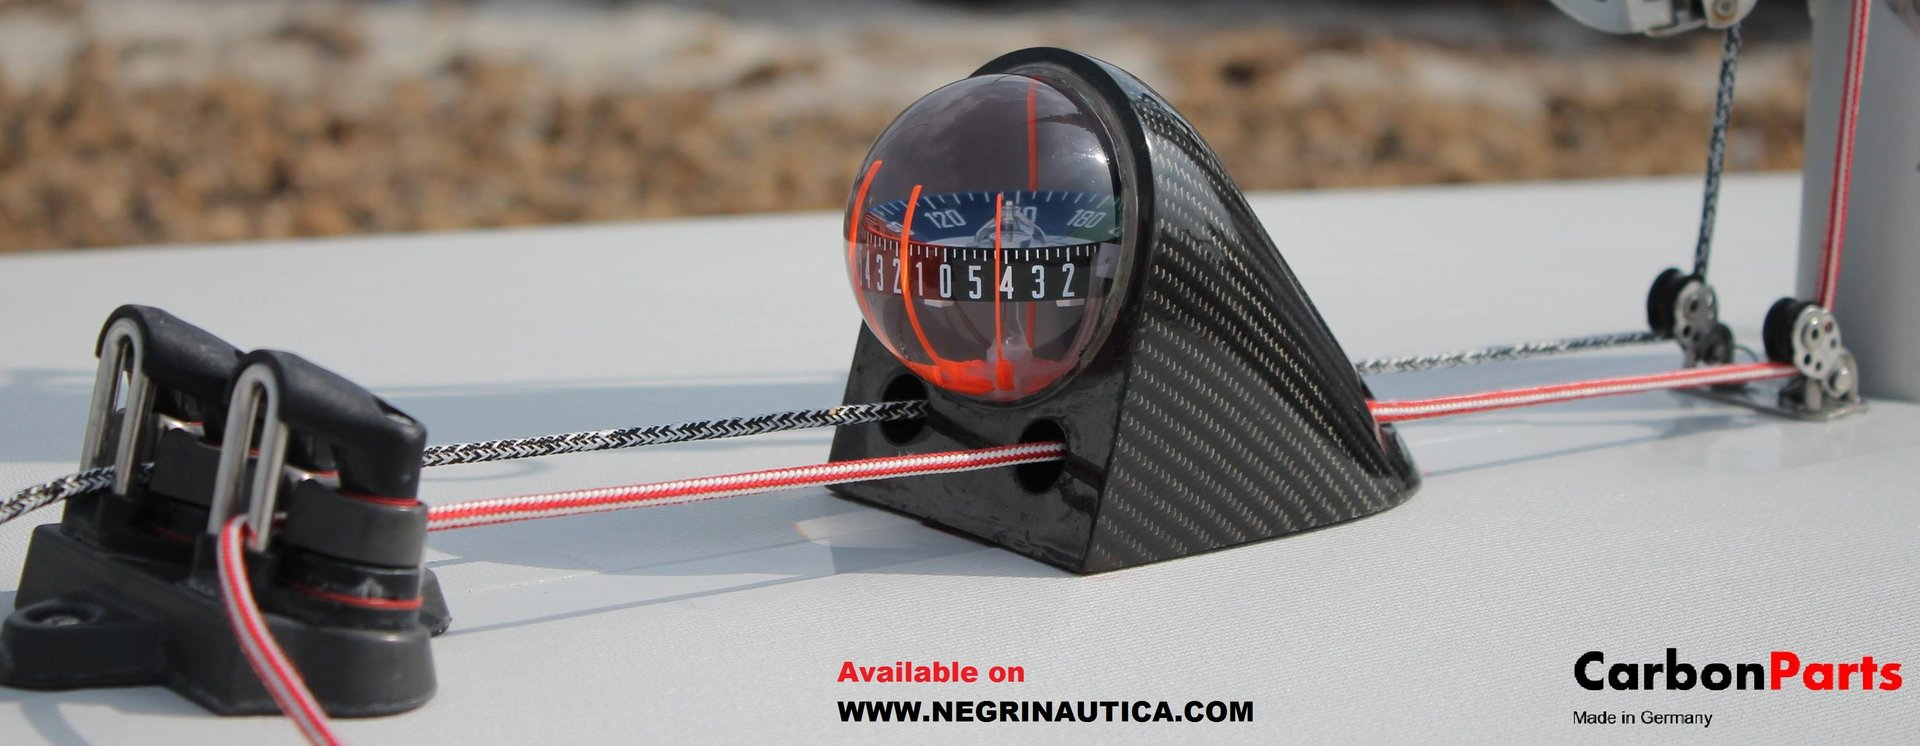 Carbon Compass For Laser Negrinautica Store